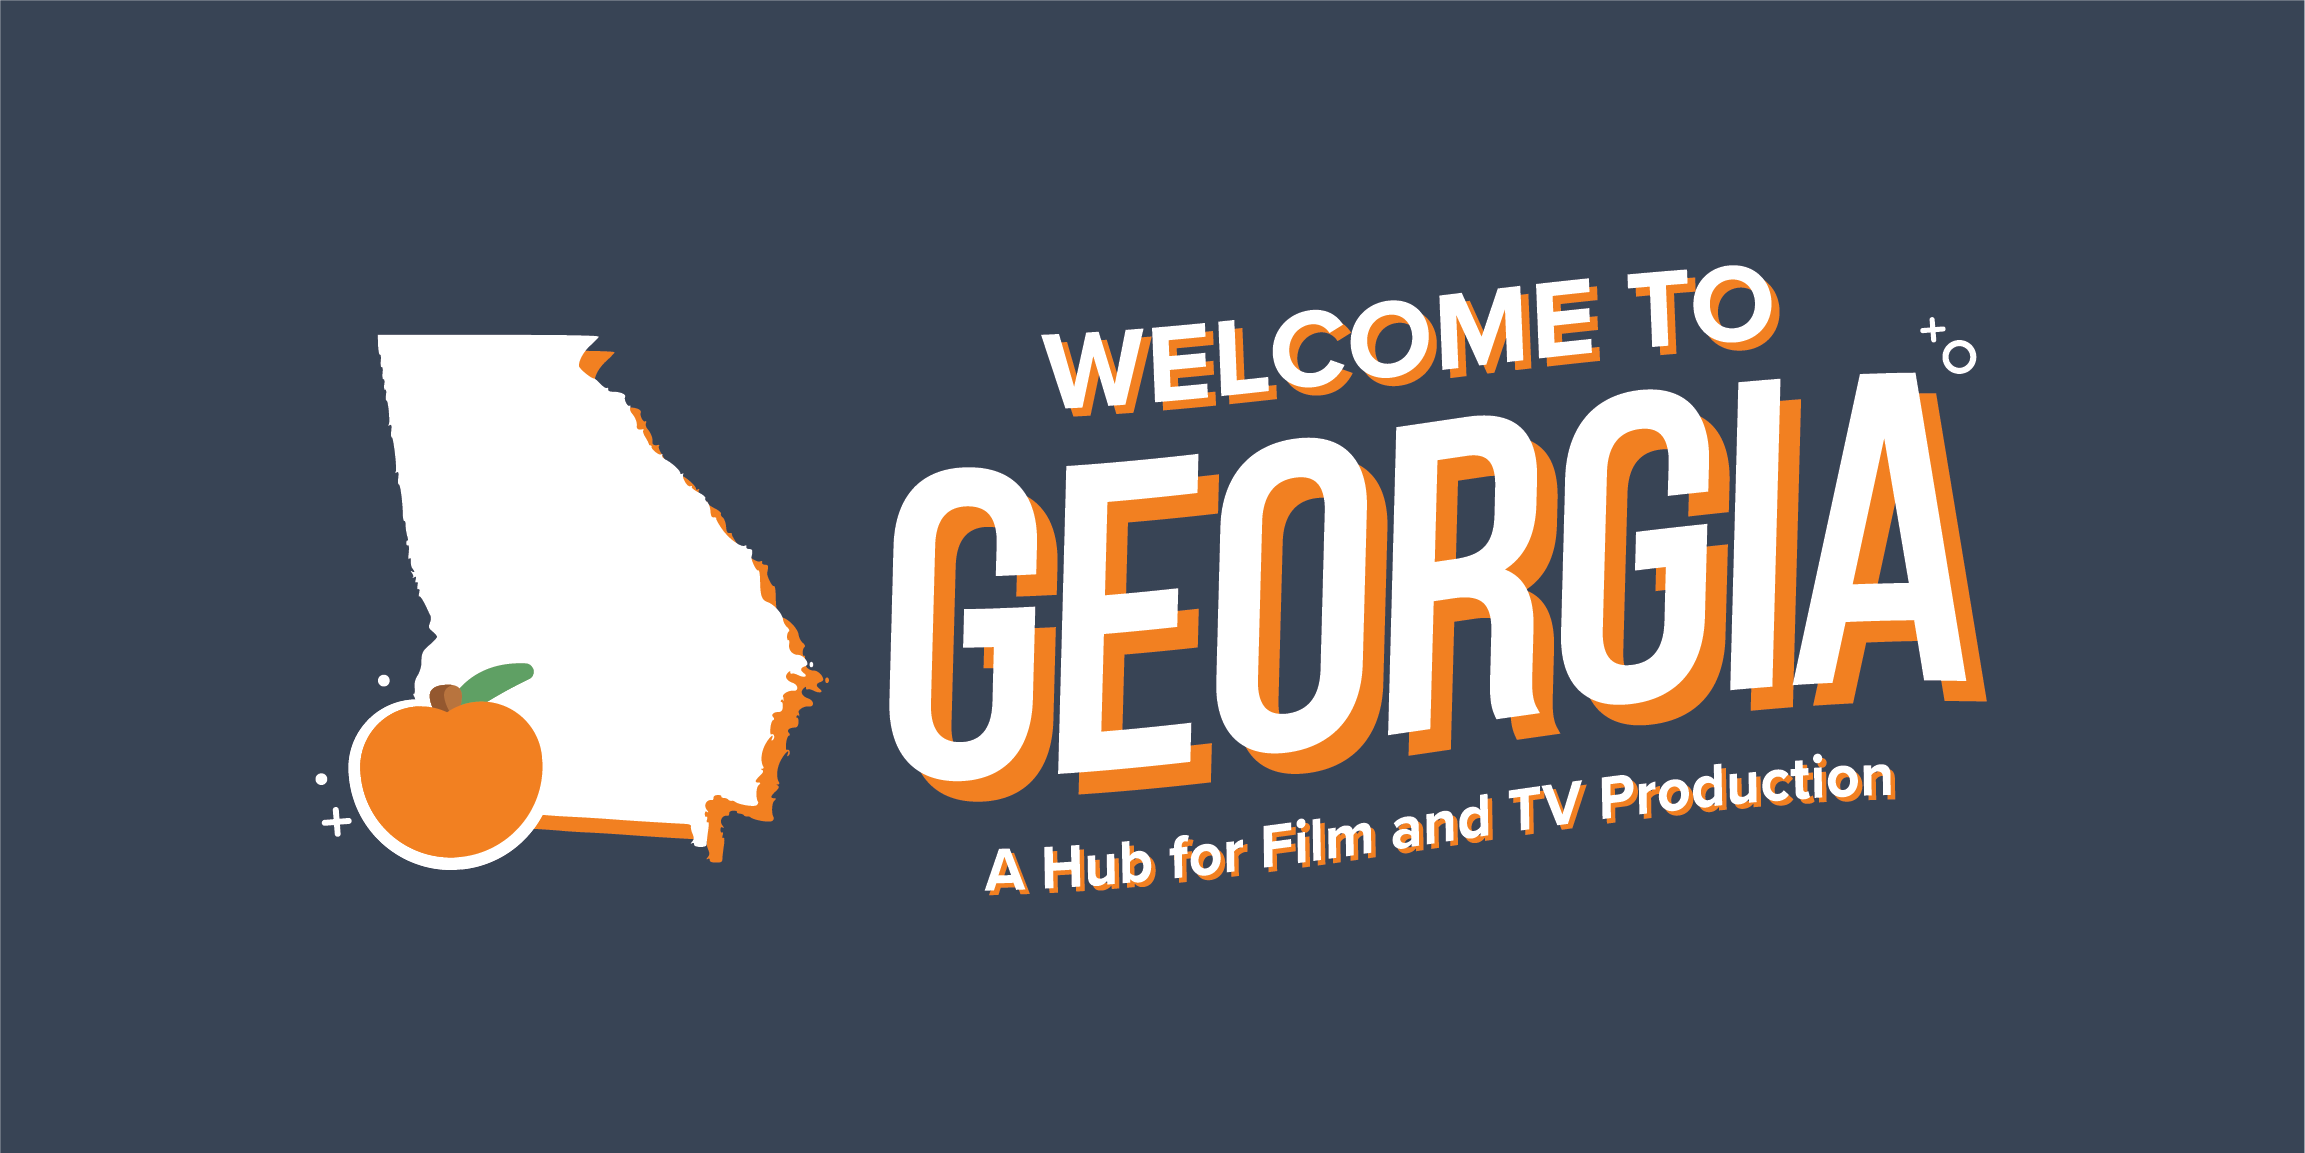 Georgia: A Hub for Film and TV Production